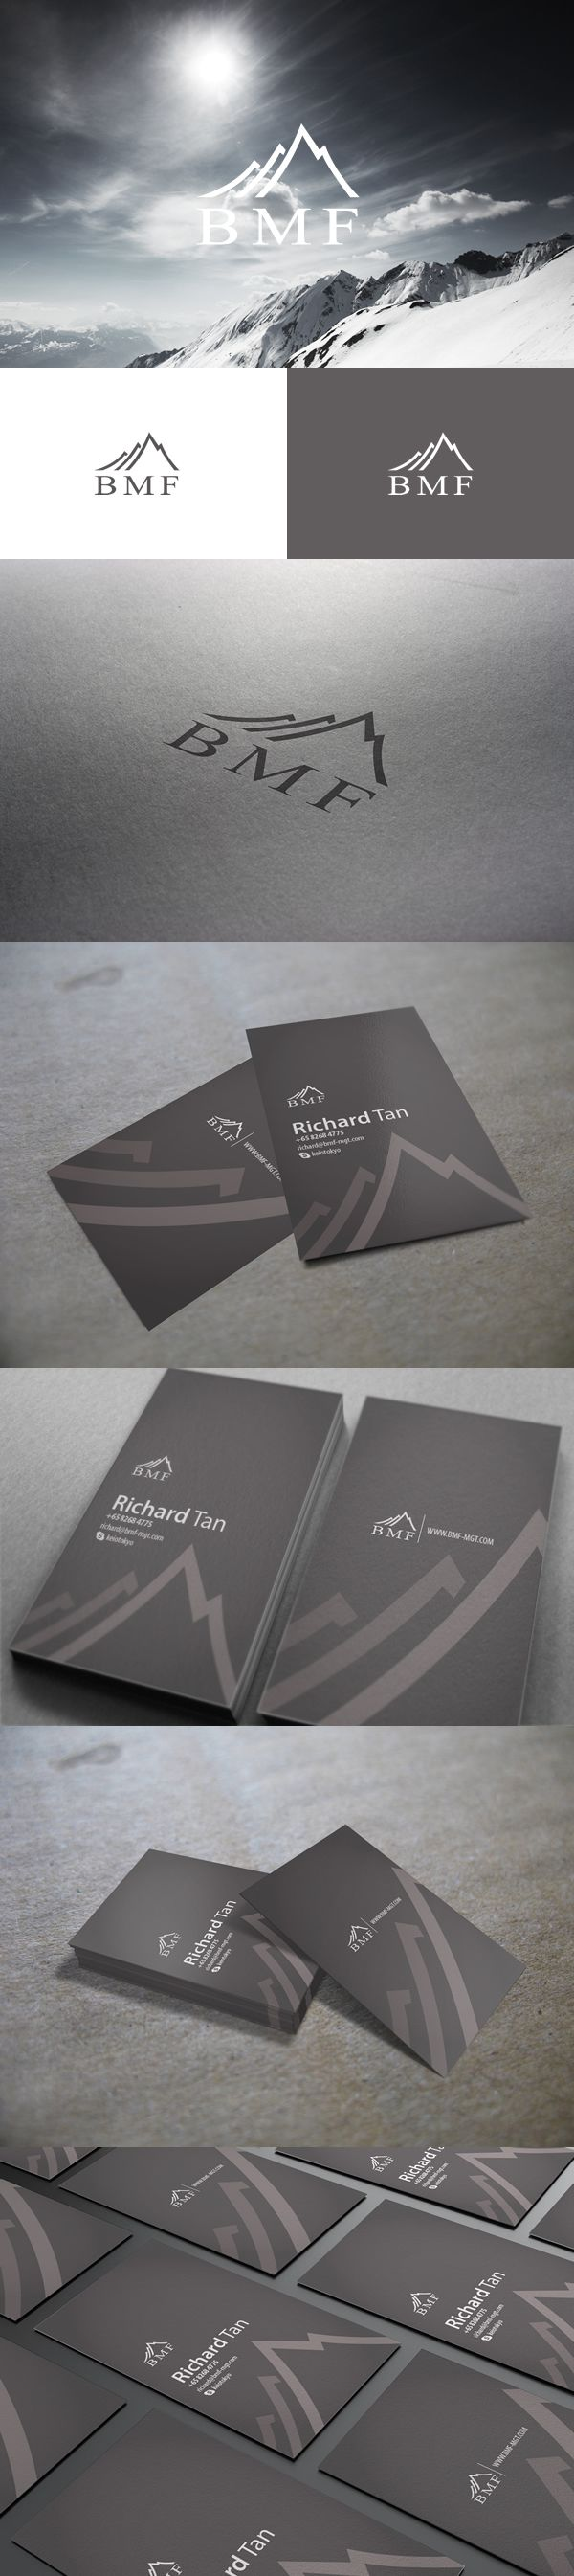 66 best bizz card images on pinterest business cards corporate bmf is a finance and investment company singapore identity project for bmf business card double sided printing matte lamination with spot uv effect reheart Choice Image